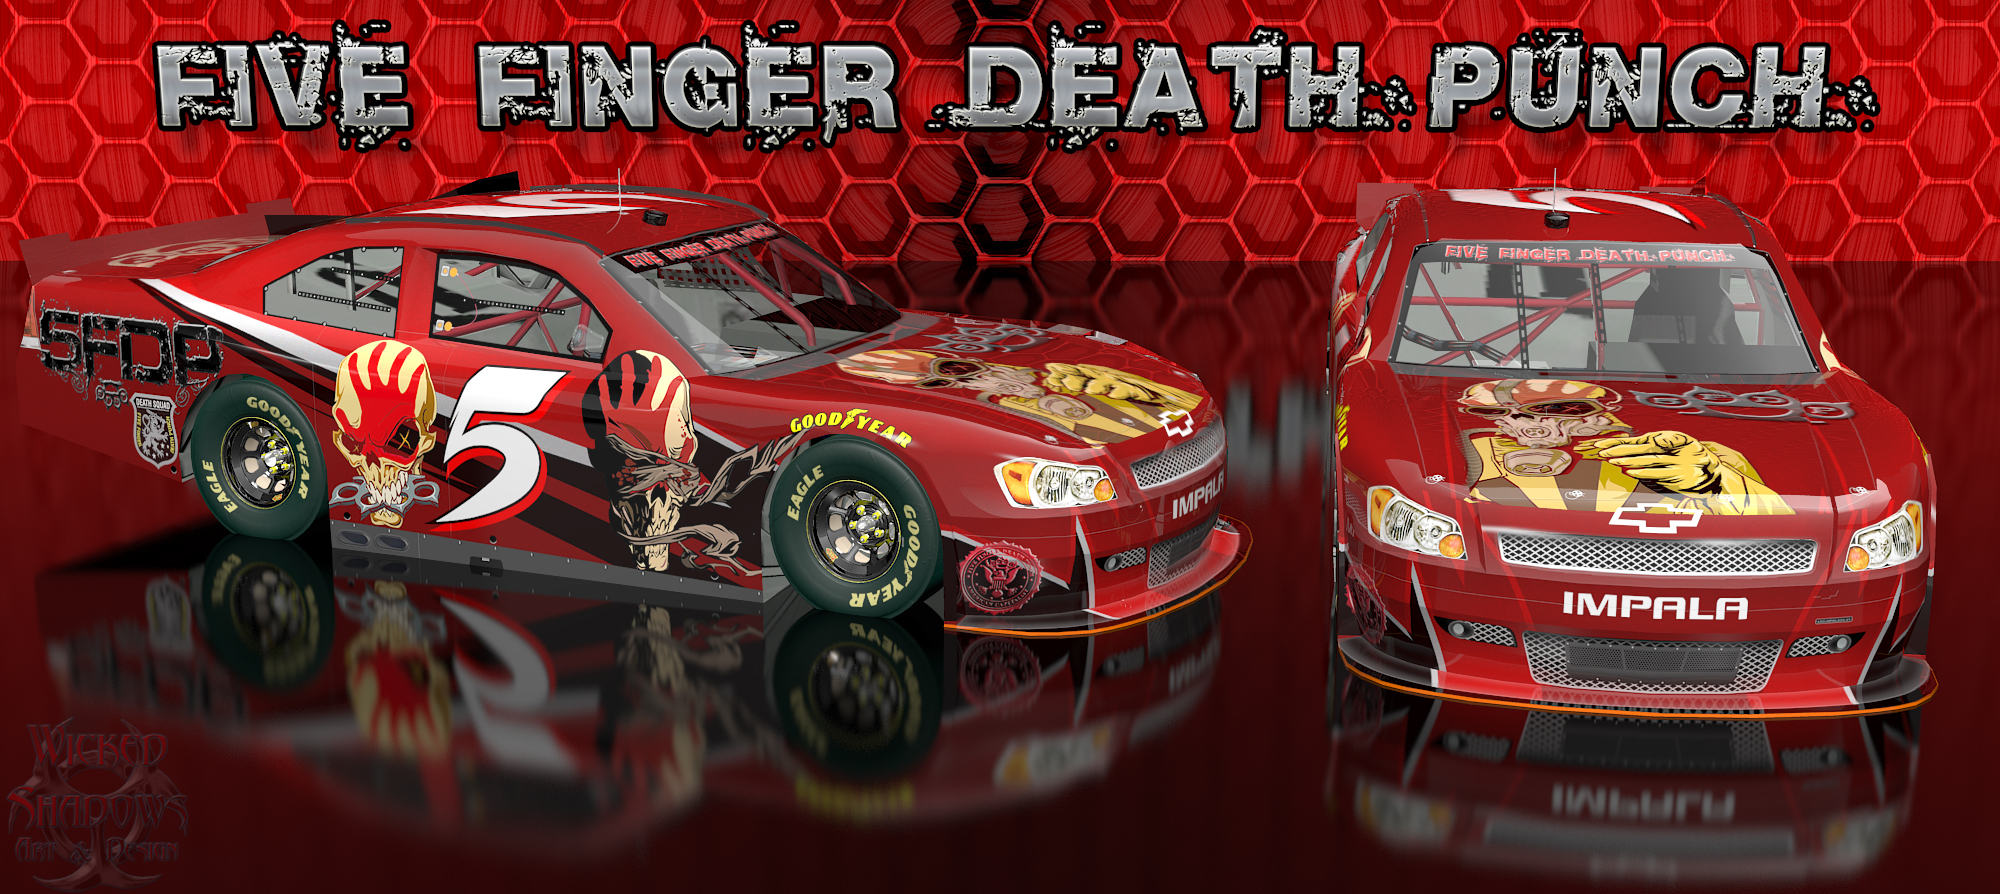 Wallpapers By Wicked Shadows: Five Finger Death Punch Wicked Chevy ...